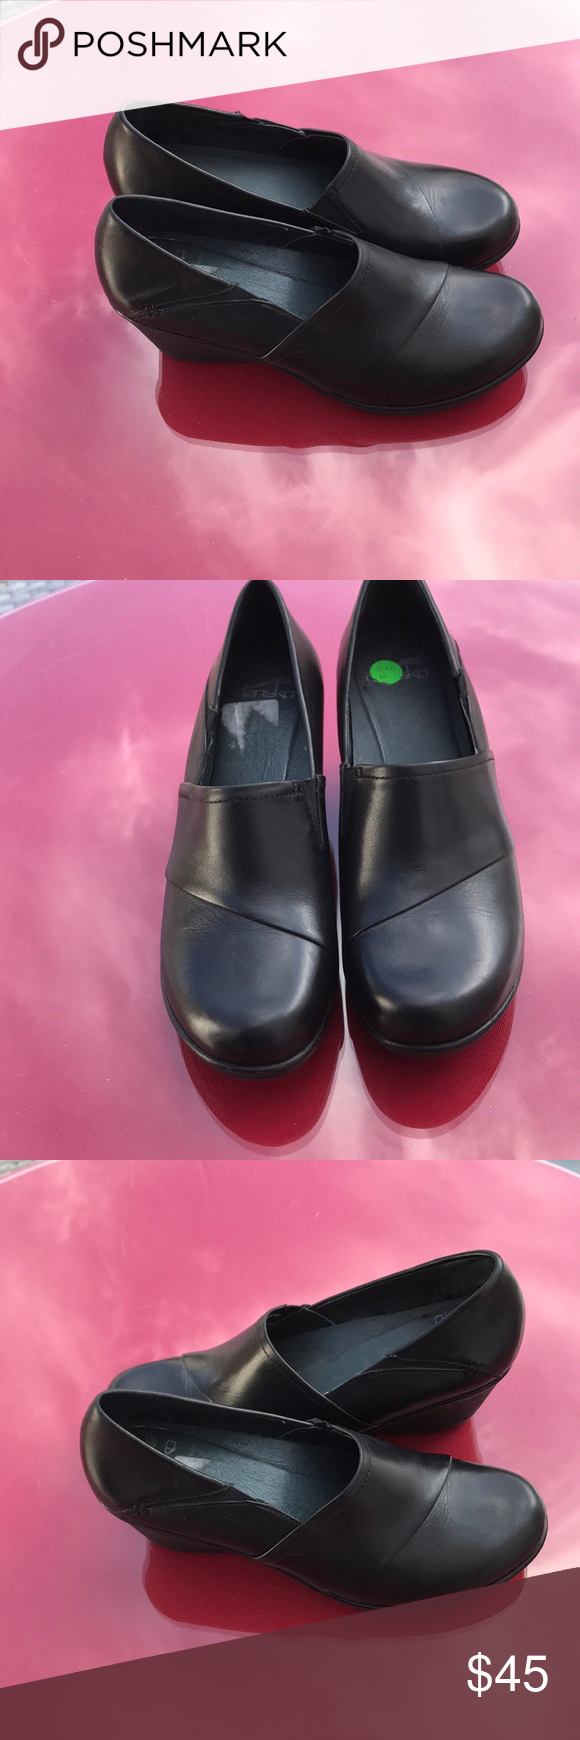 Dansko black wedge clogs in great condition Dansko black wedge clogs in great condition size 10 2/17/18 Dansko Shoes Mules & Clogs